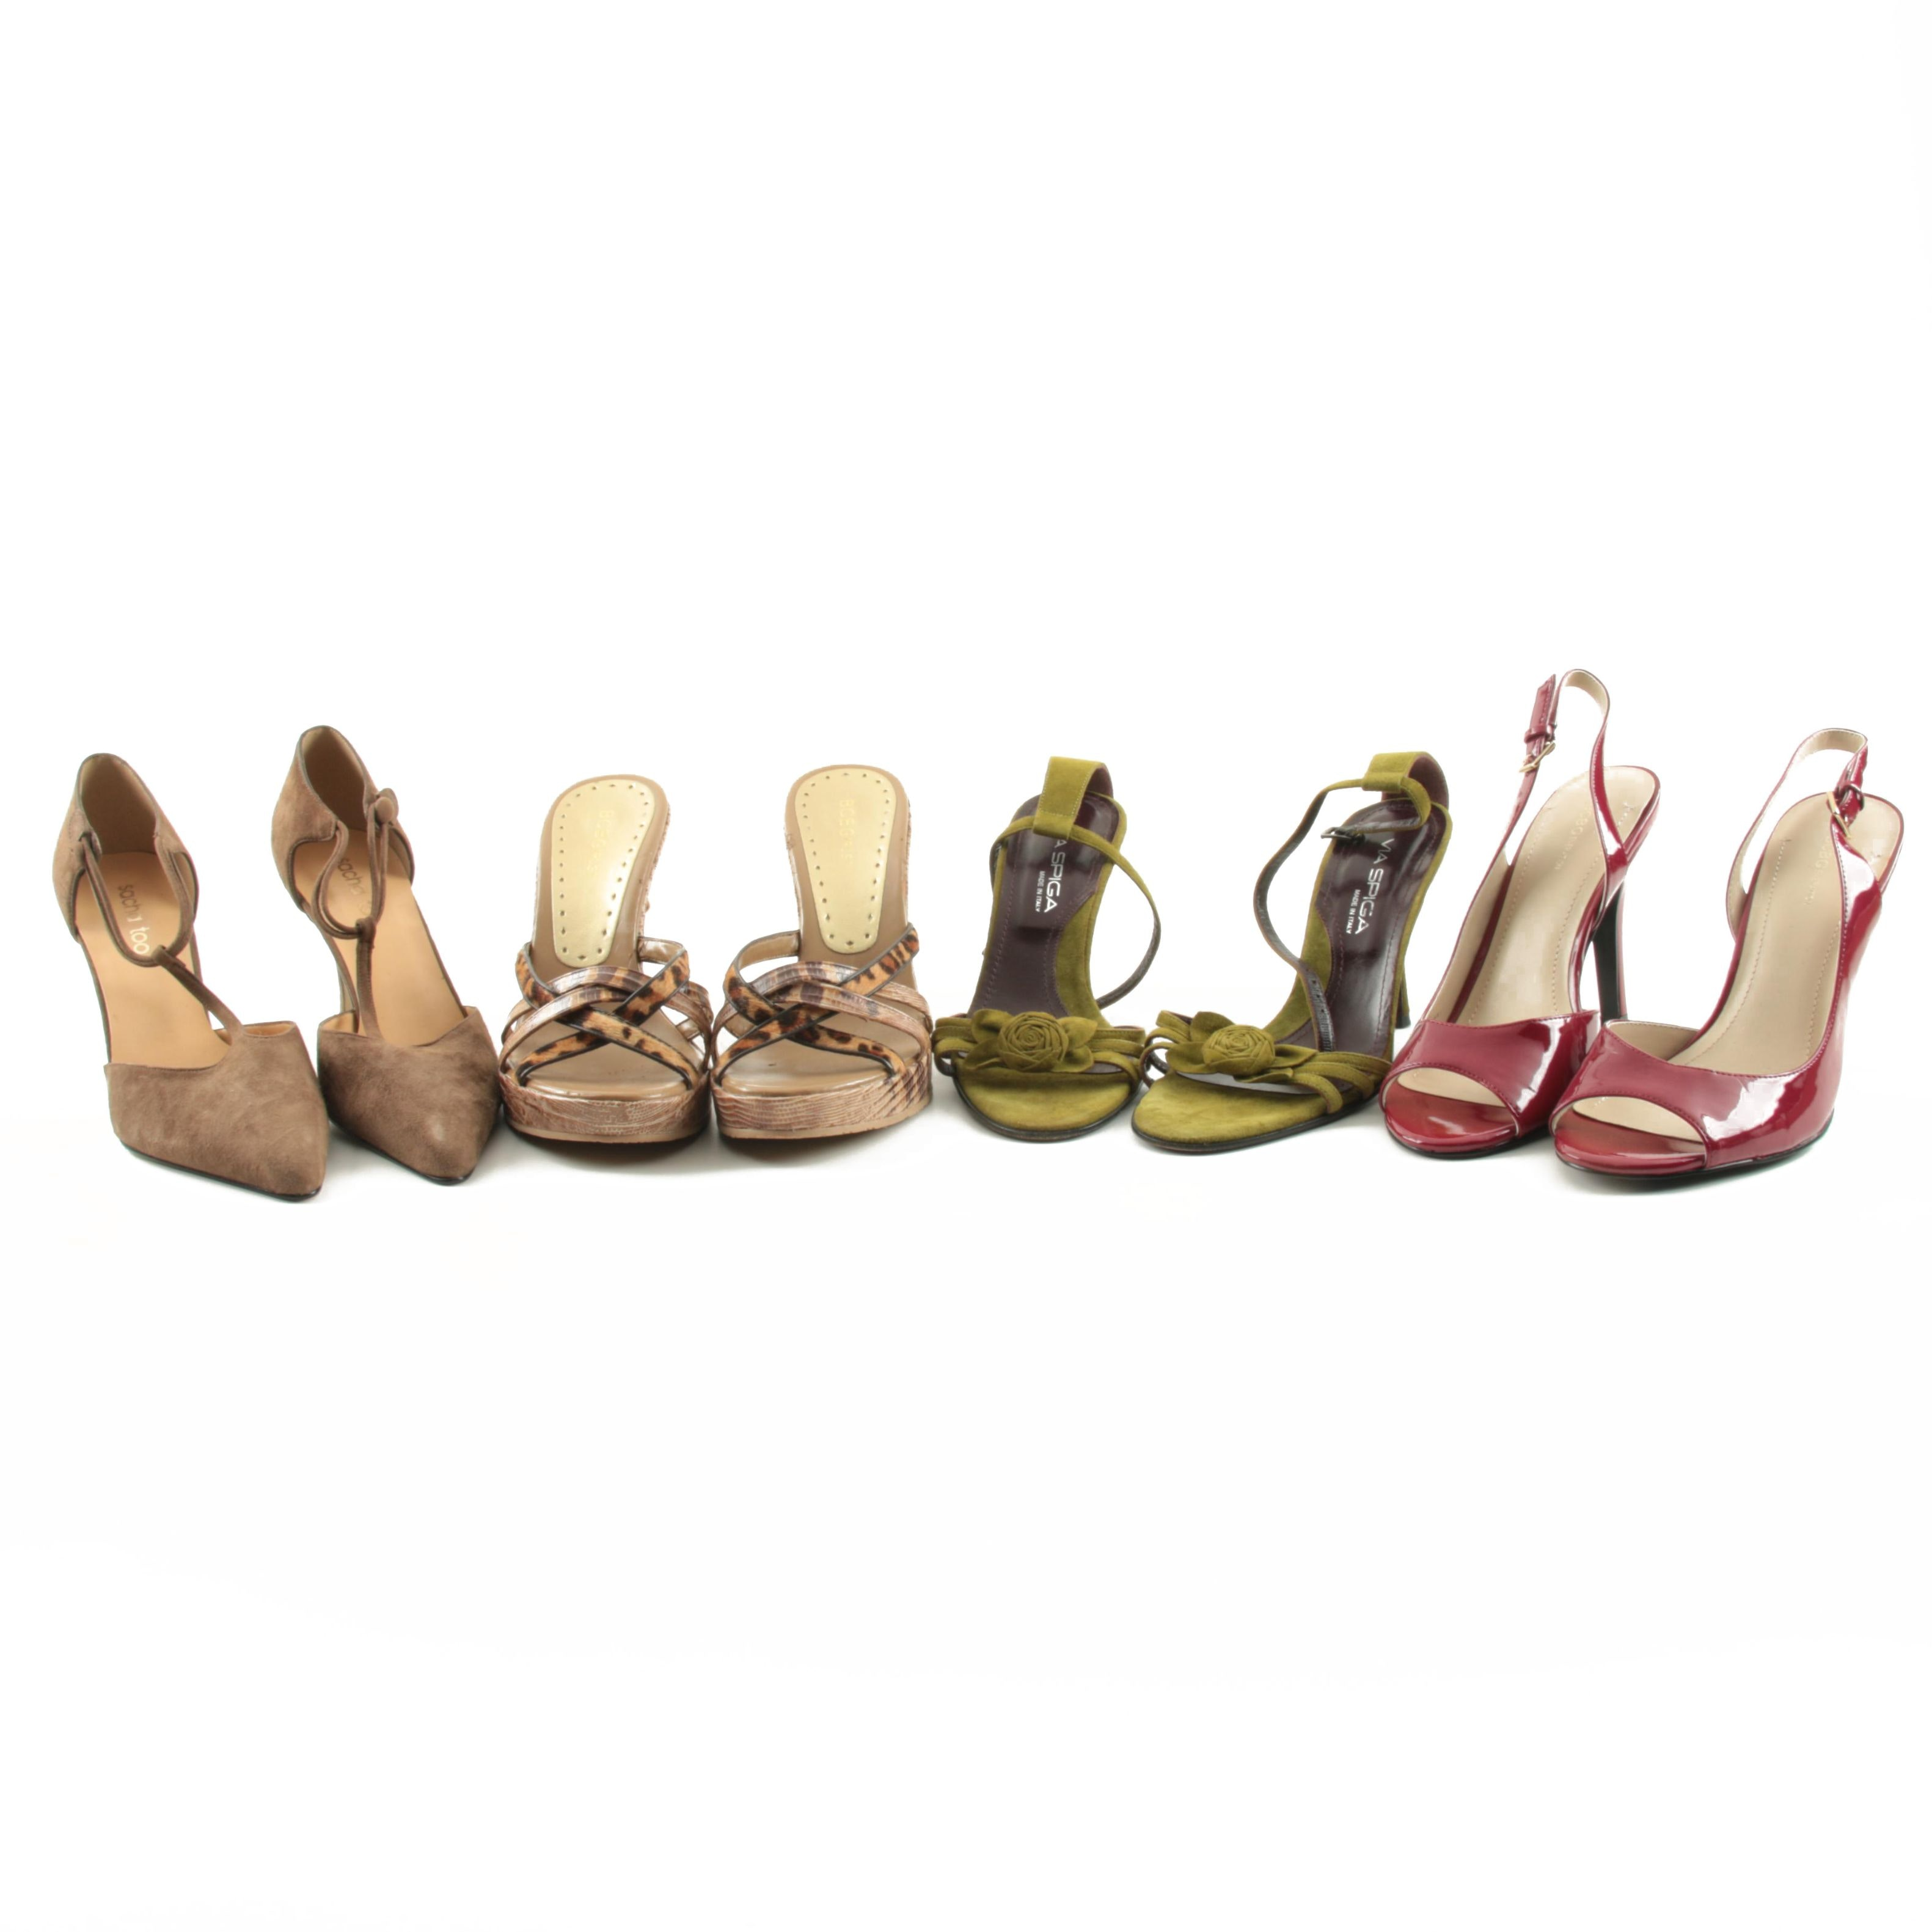 Women's High Heels and Wedges Including Via Spiga and Sacha Too